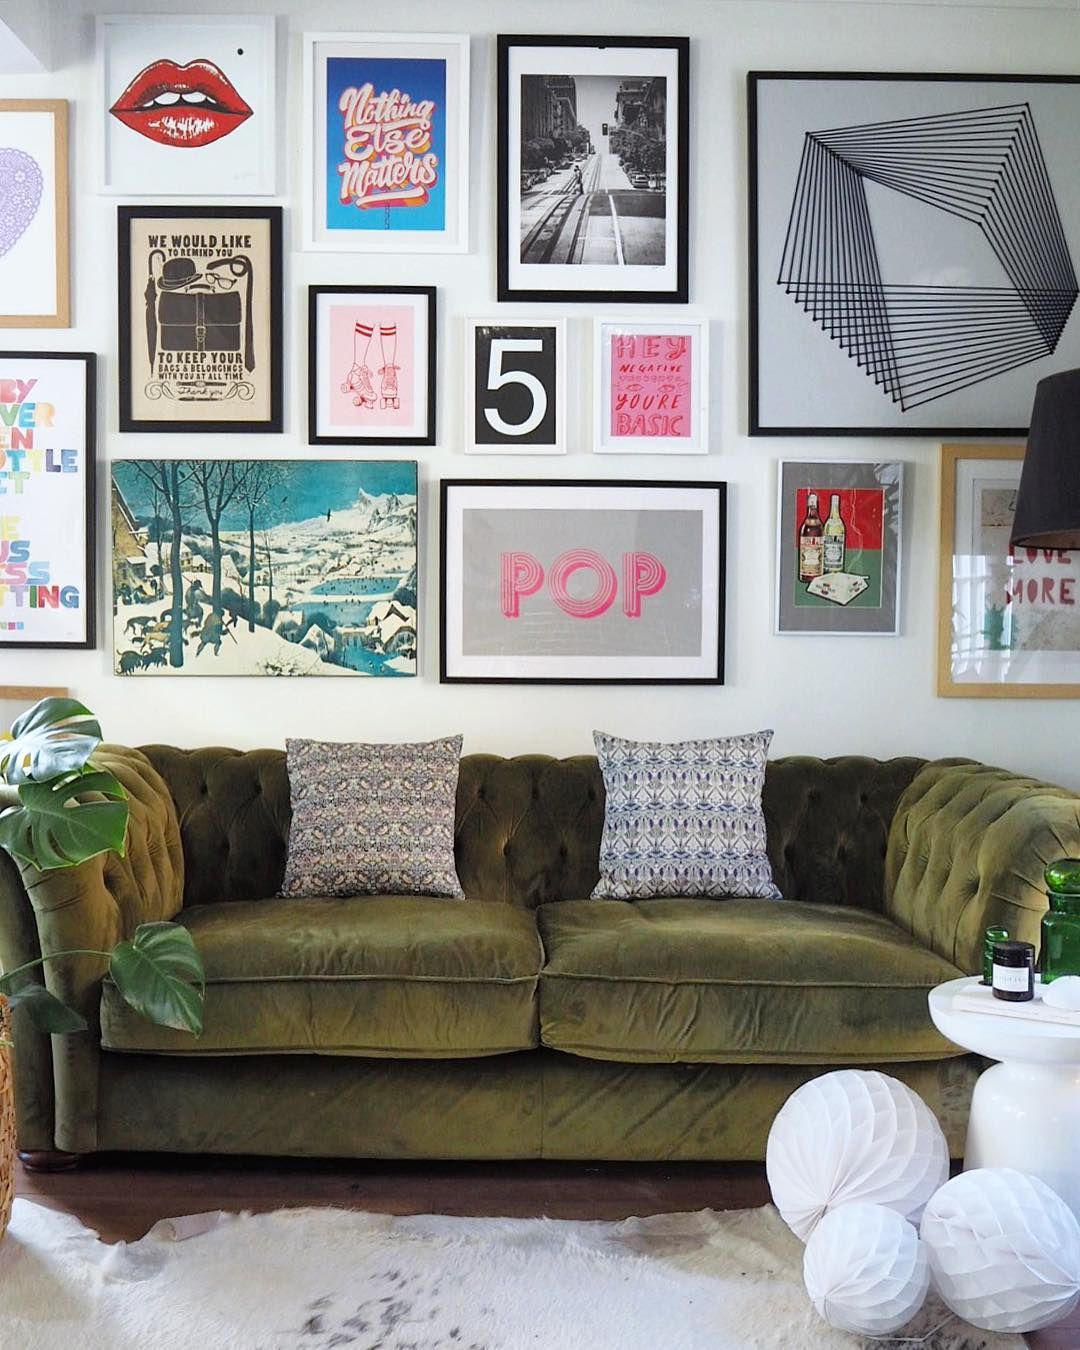 Gallery Wall Green Sofa Eclectic Gallery Wall Home Decor Styles Decor Beautiful living rooms tumblr